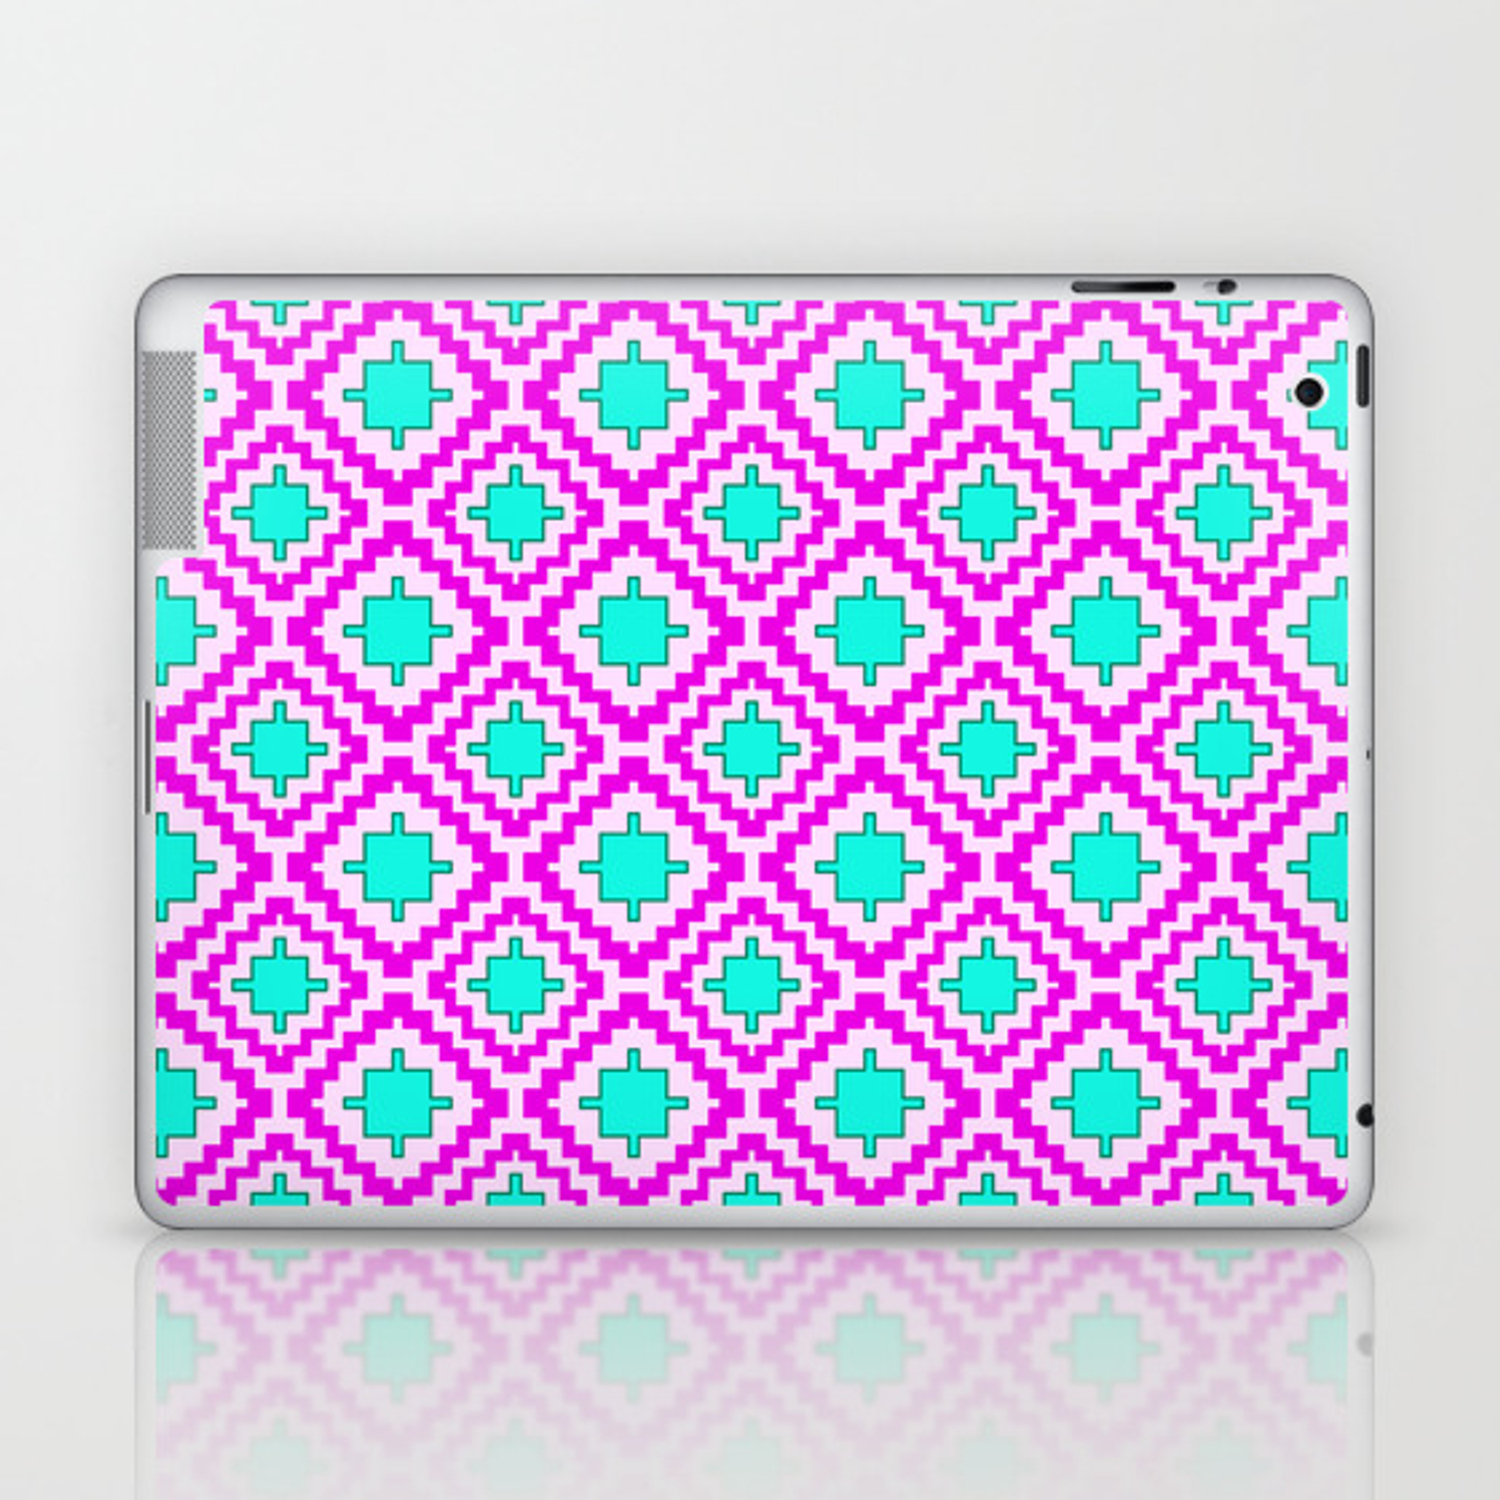 Cowgirl Pink And Turquoise Navajo Native Inspired Oklahoma Arizona Southwestern Design Pattern Laptop & Ipad Skindpartgallery With Regard To Southwest Pink Credenzas (View 5 of 30)